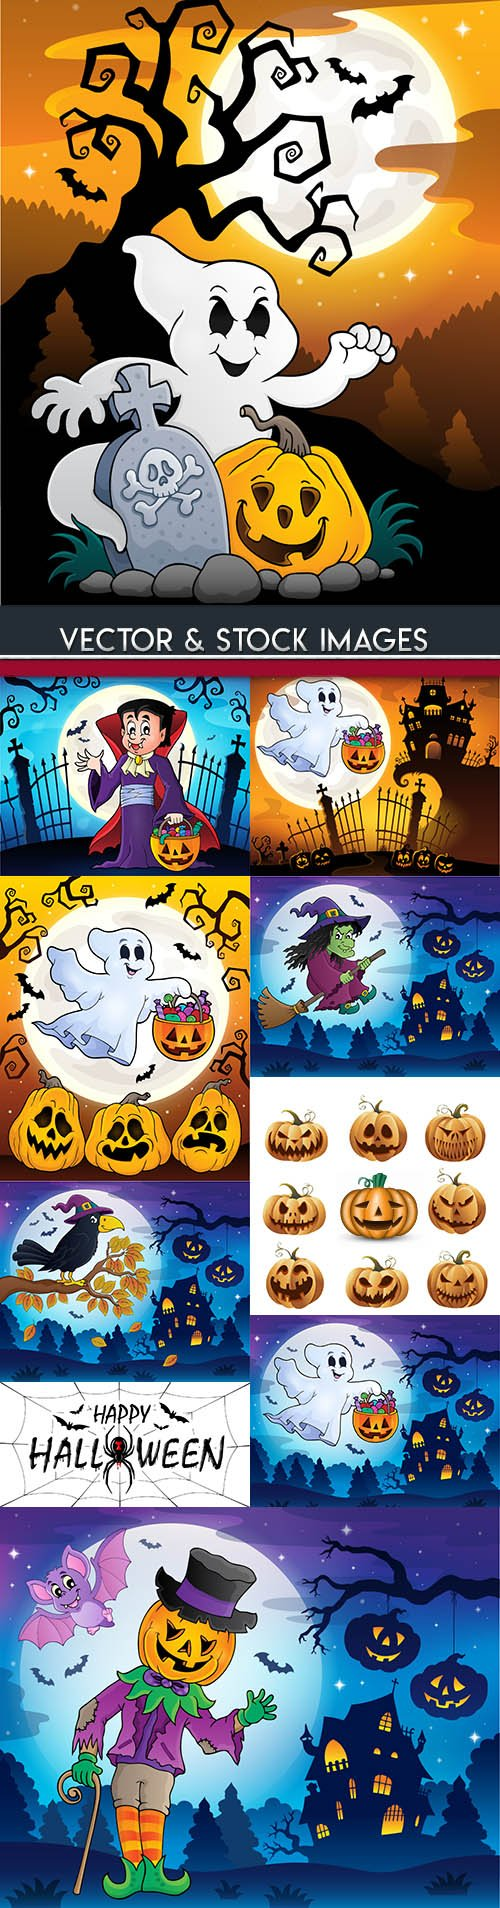 Happy Halloween holiday illustration collection 25